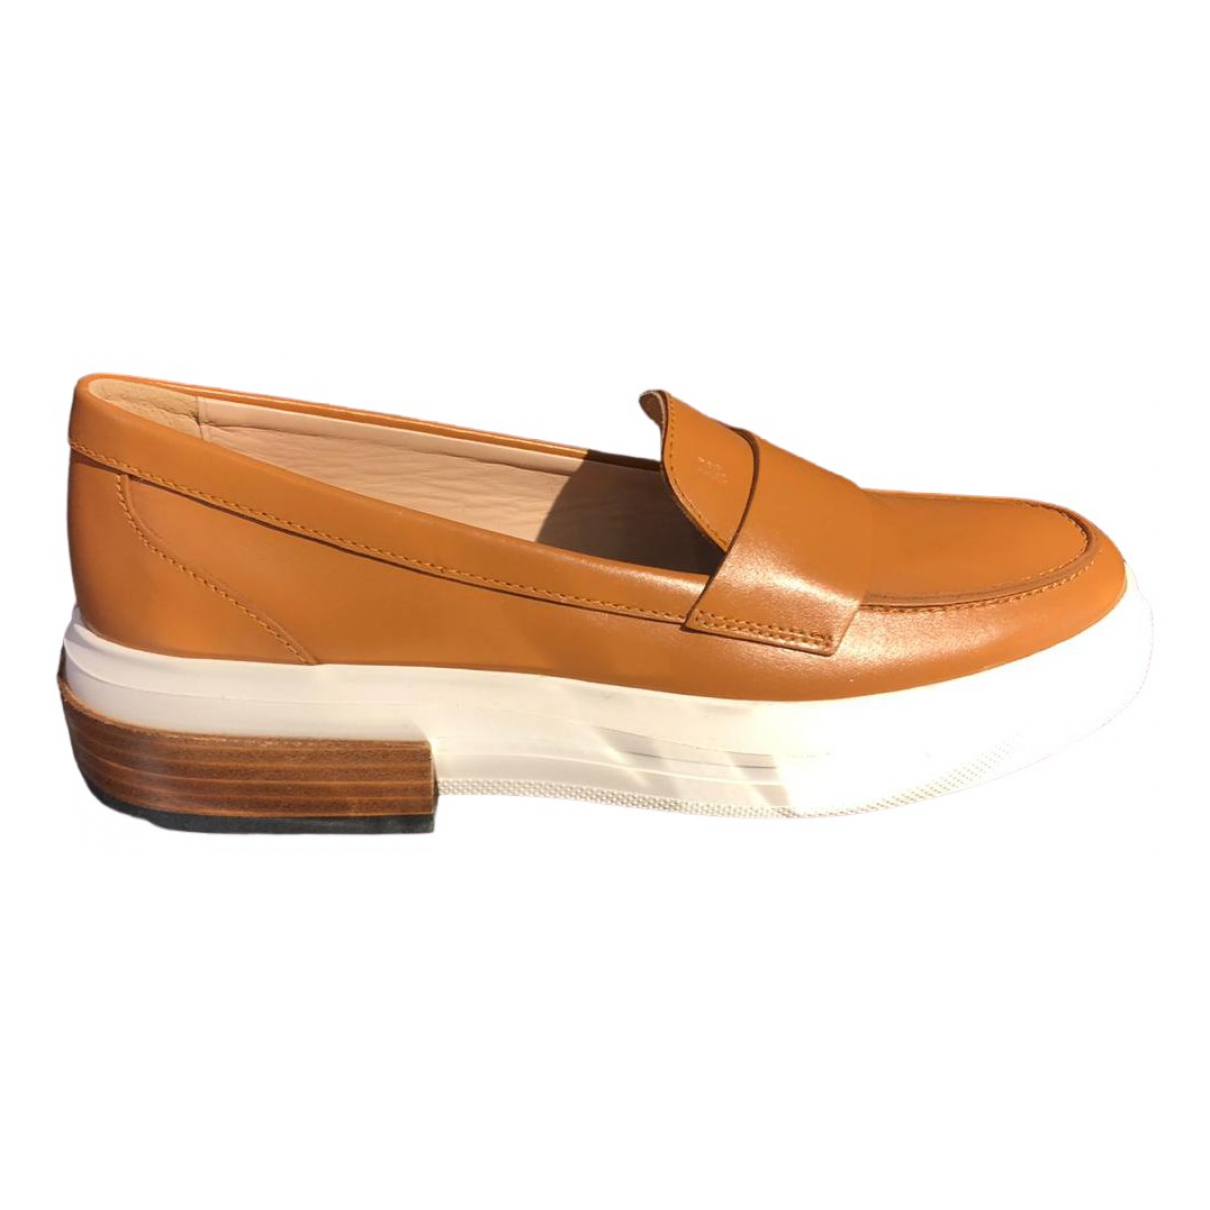 Tod's \N Camel Leather Flats for Women 36 EU